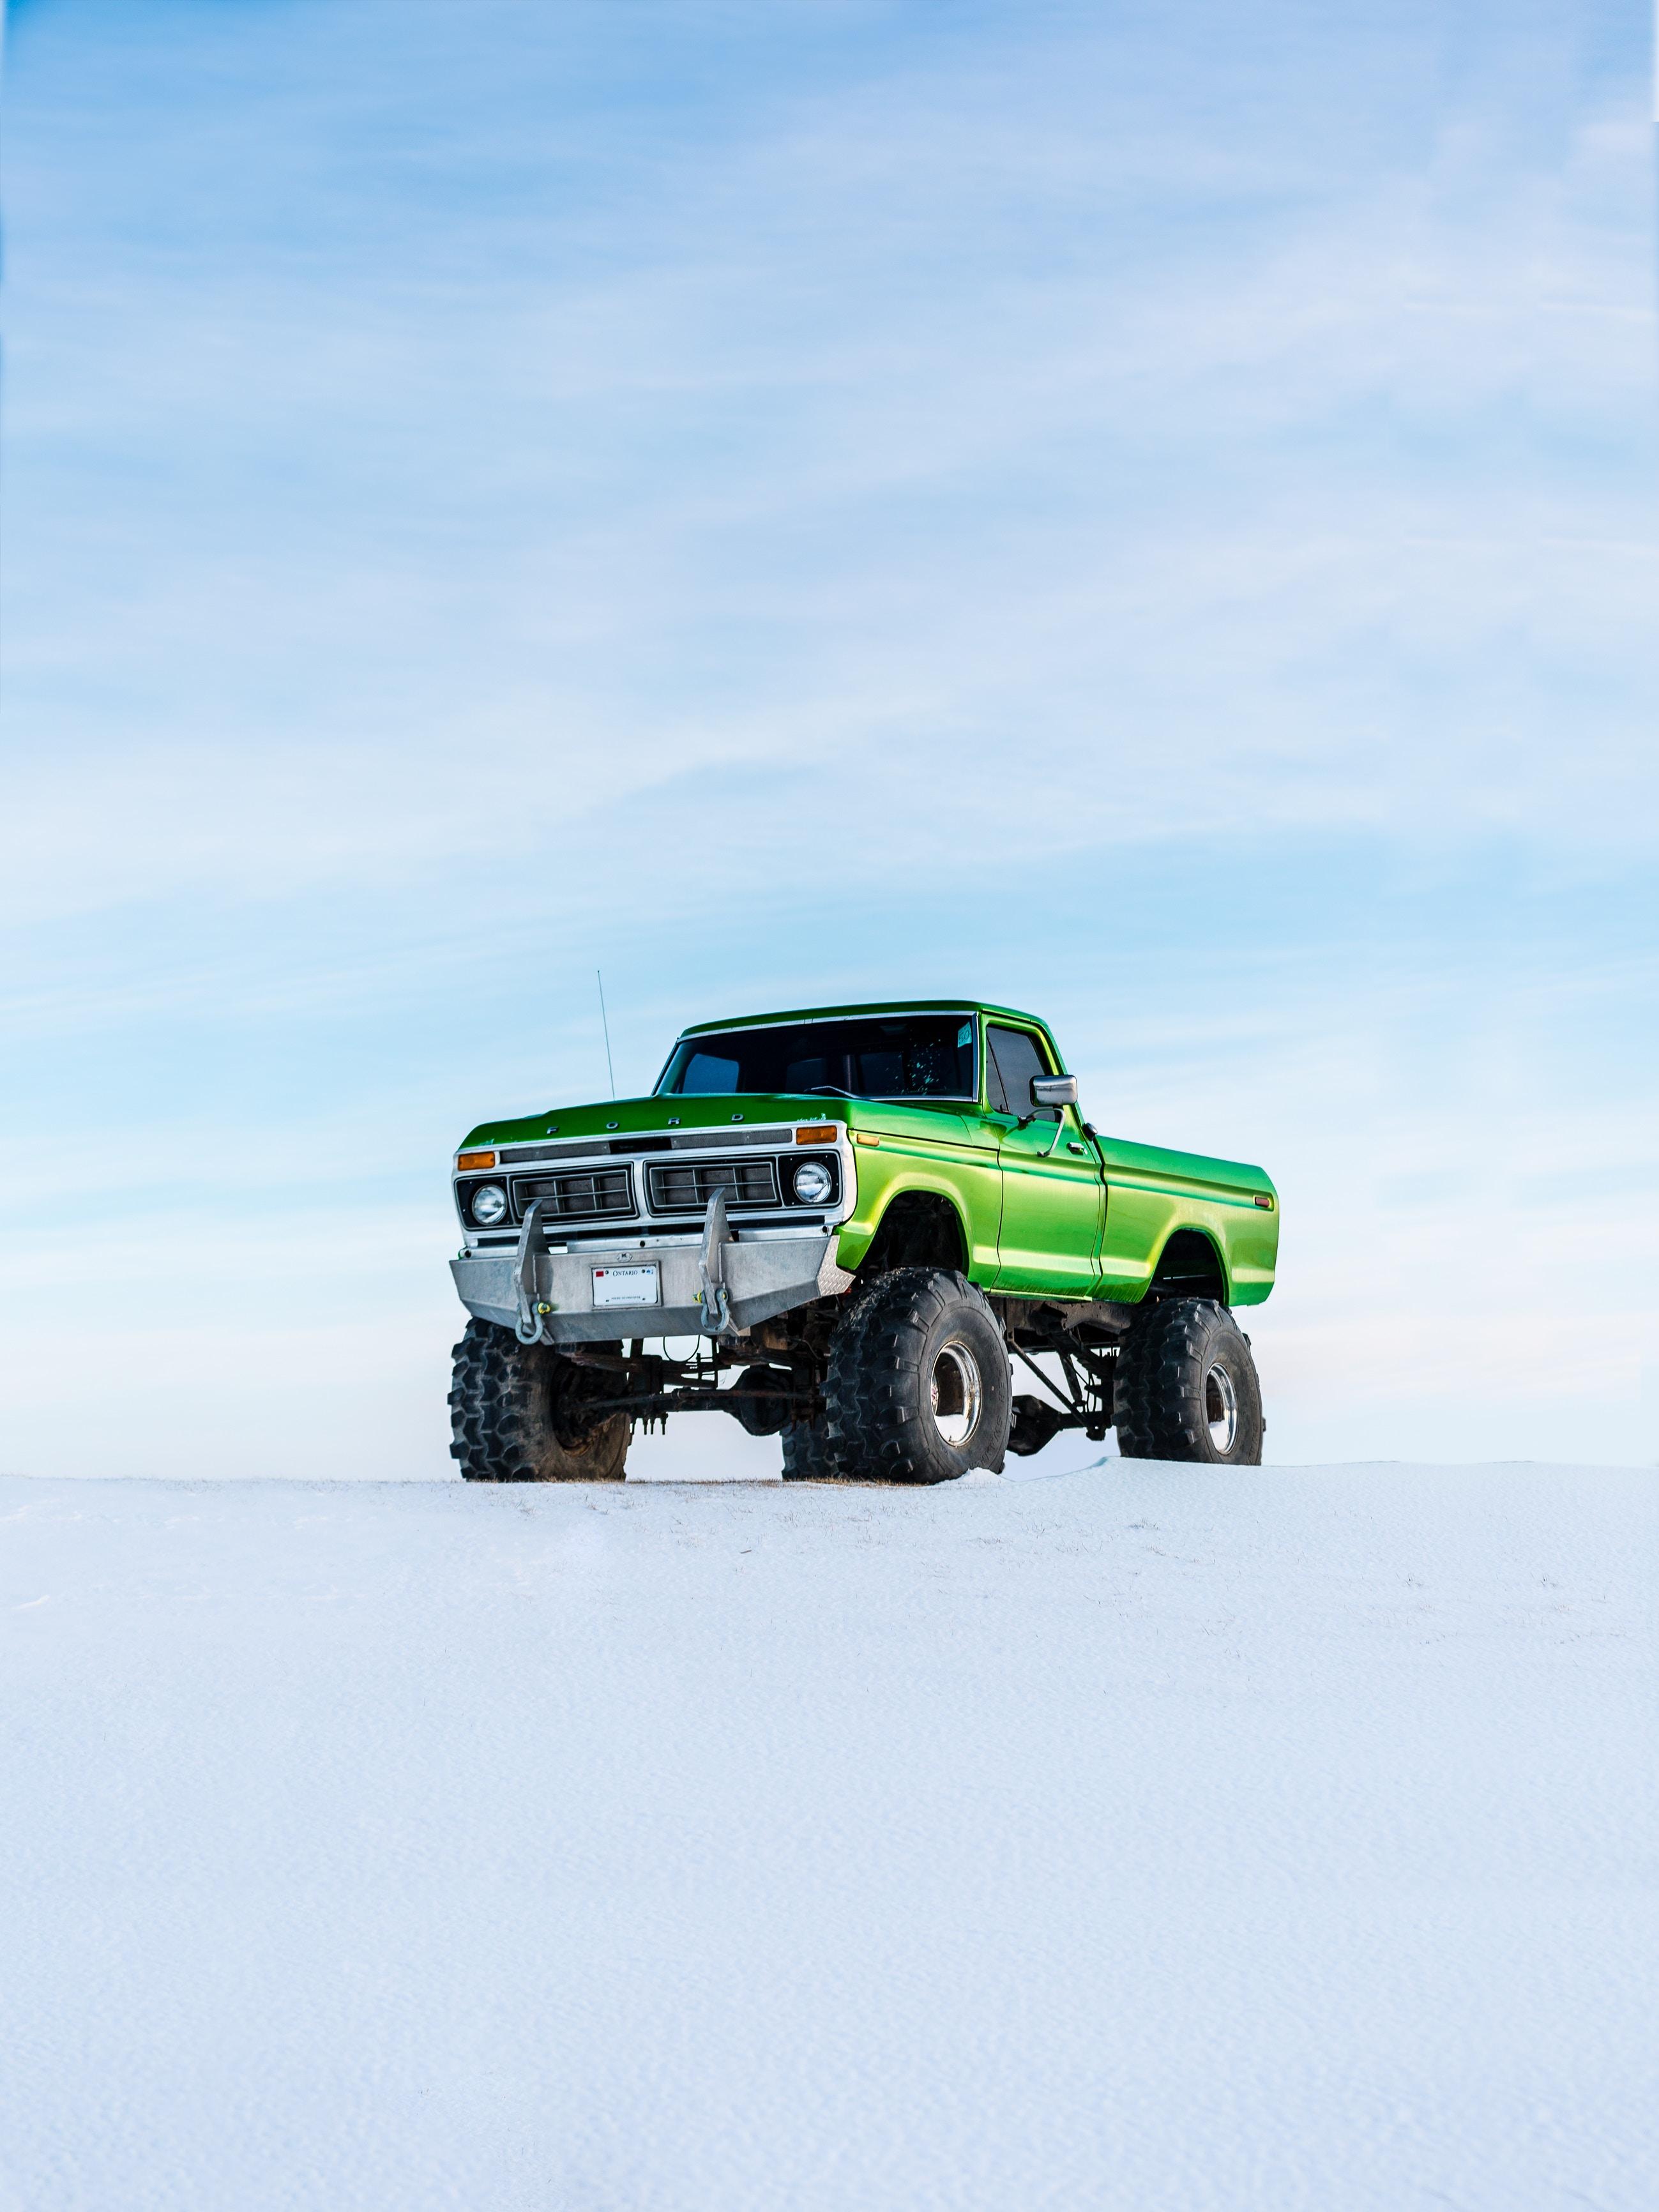 Tires for Offroad Vehicles, Anchorage, Alaska